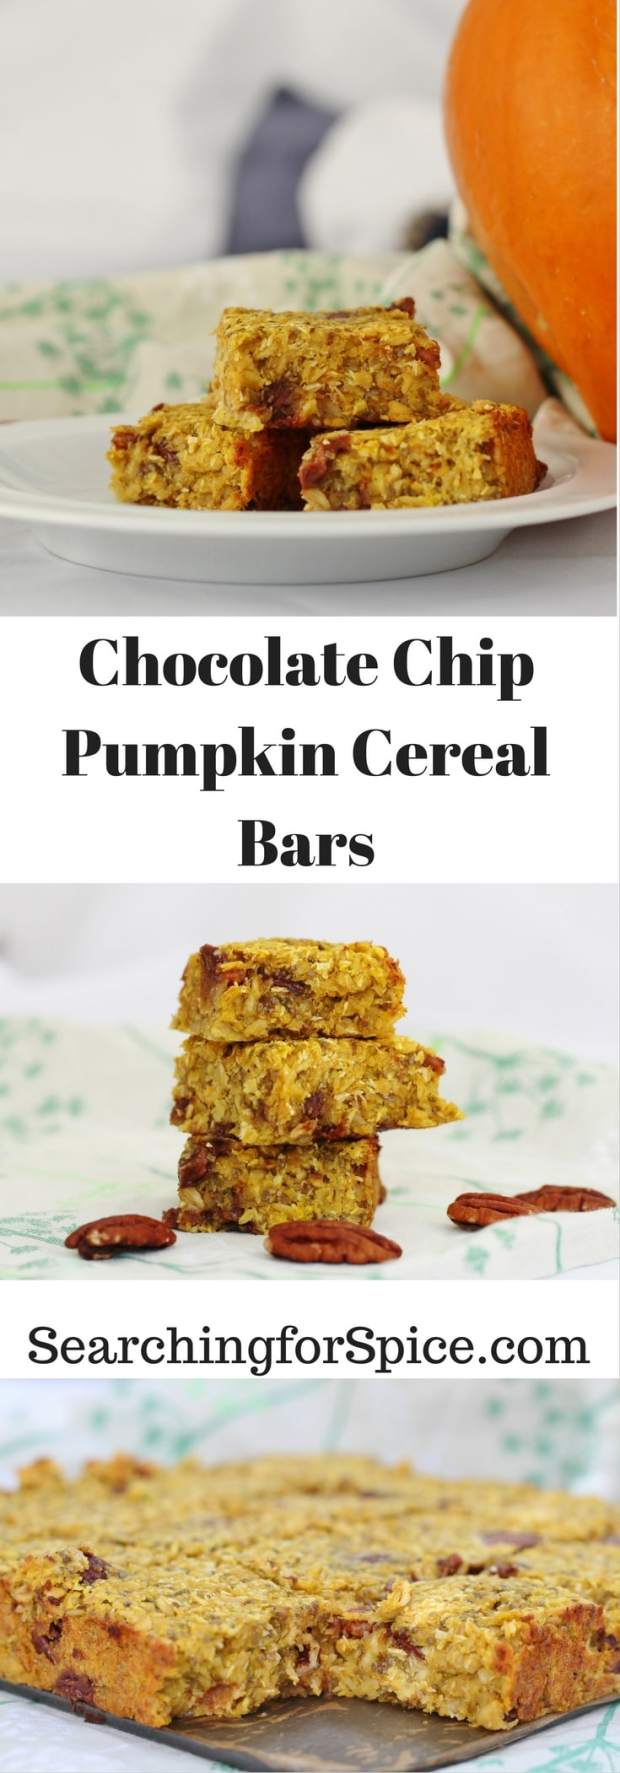 Chocolate Chip Pumpkin Cereal Bars